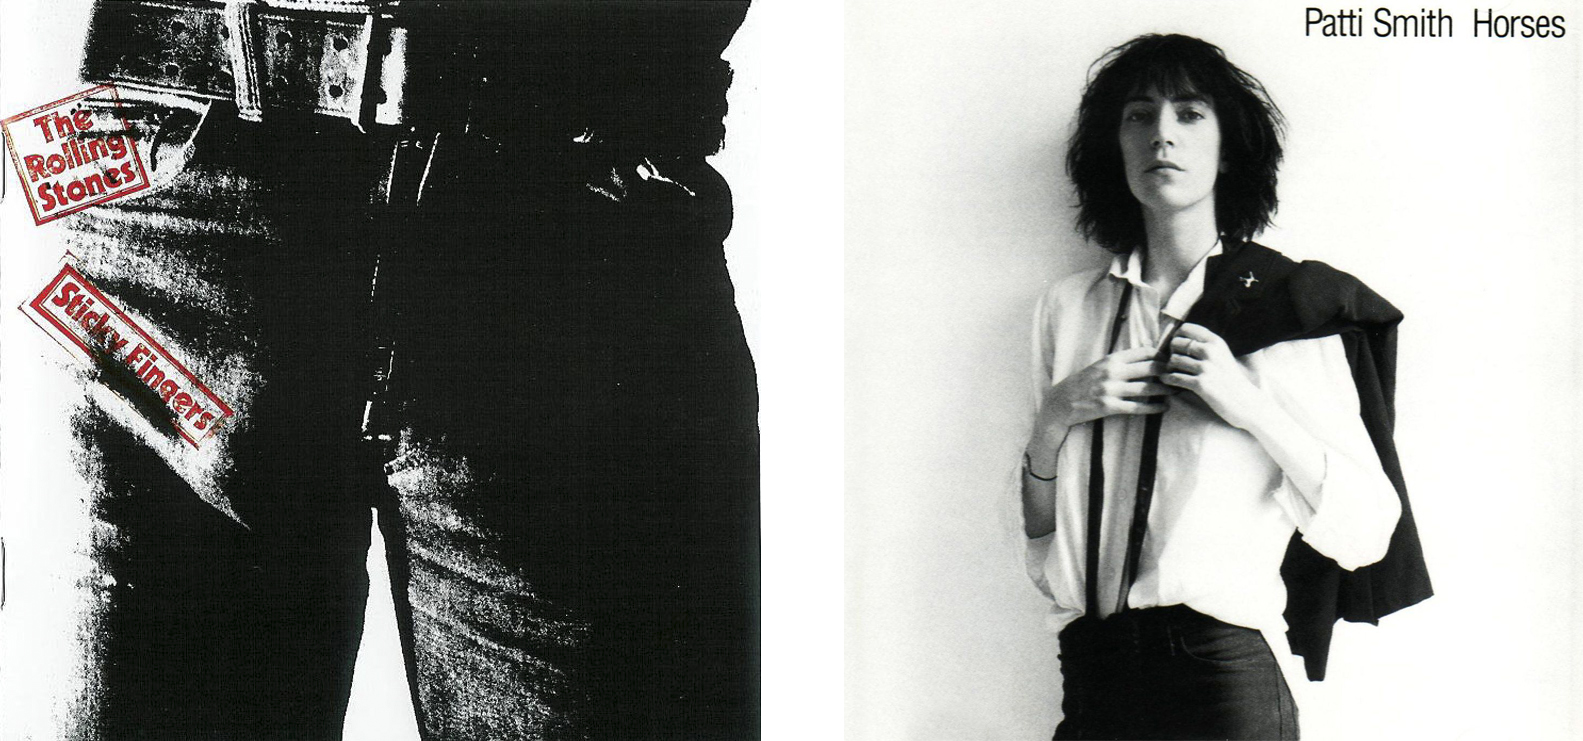 'Sticky Fingers' (The Rolling Stones, 1971) y 'Horses' (Patti Smith, 1975)